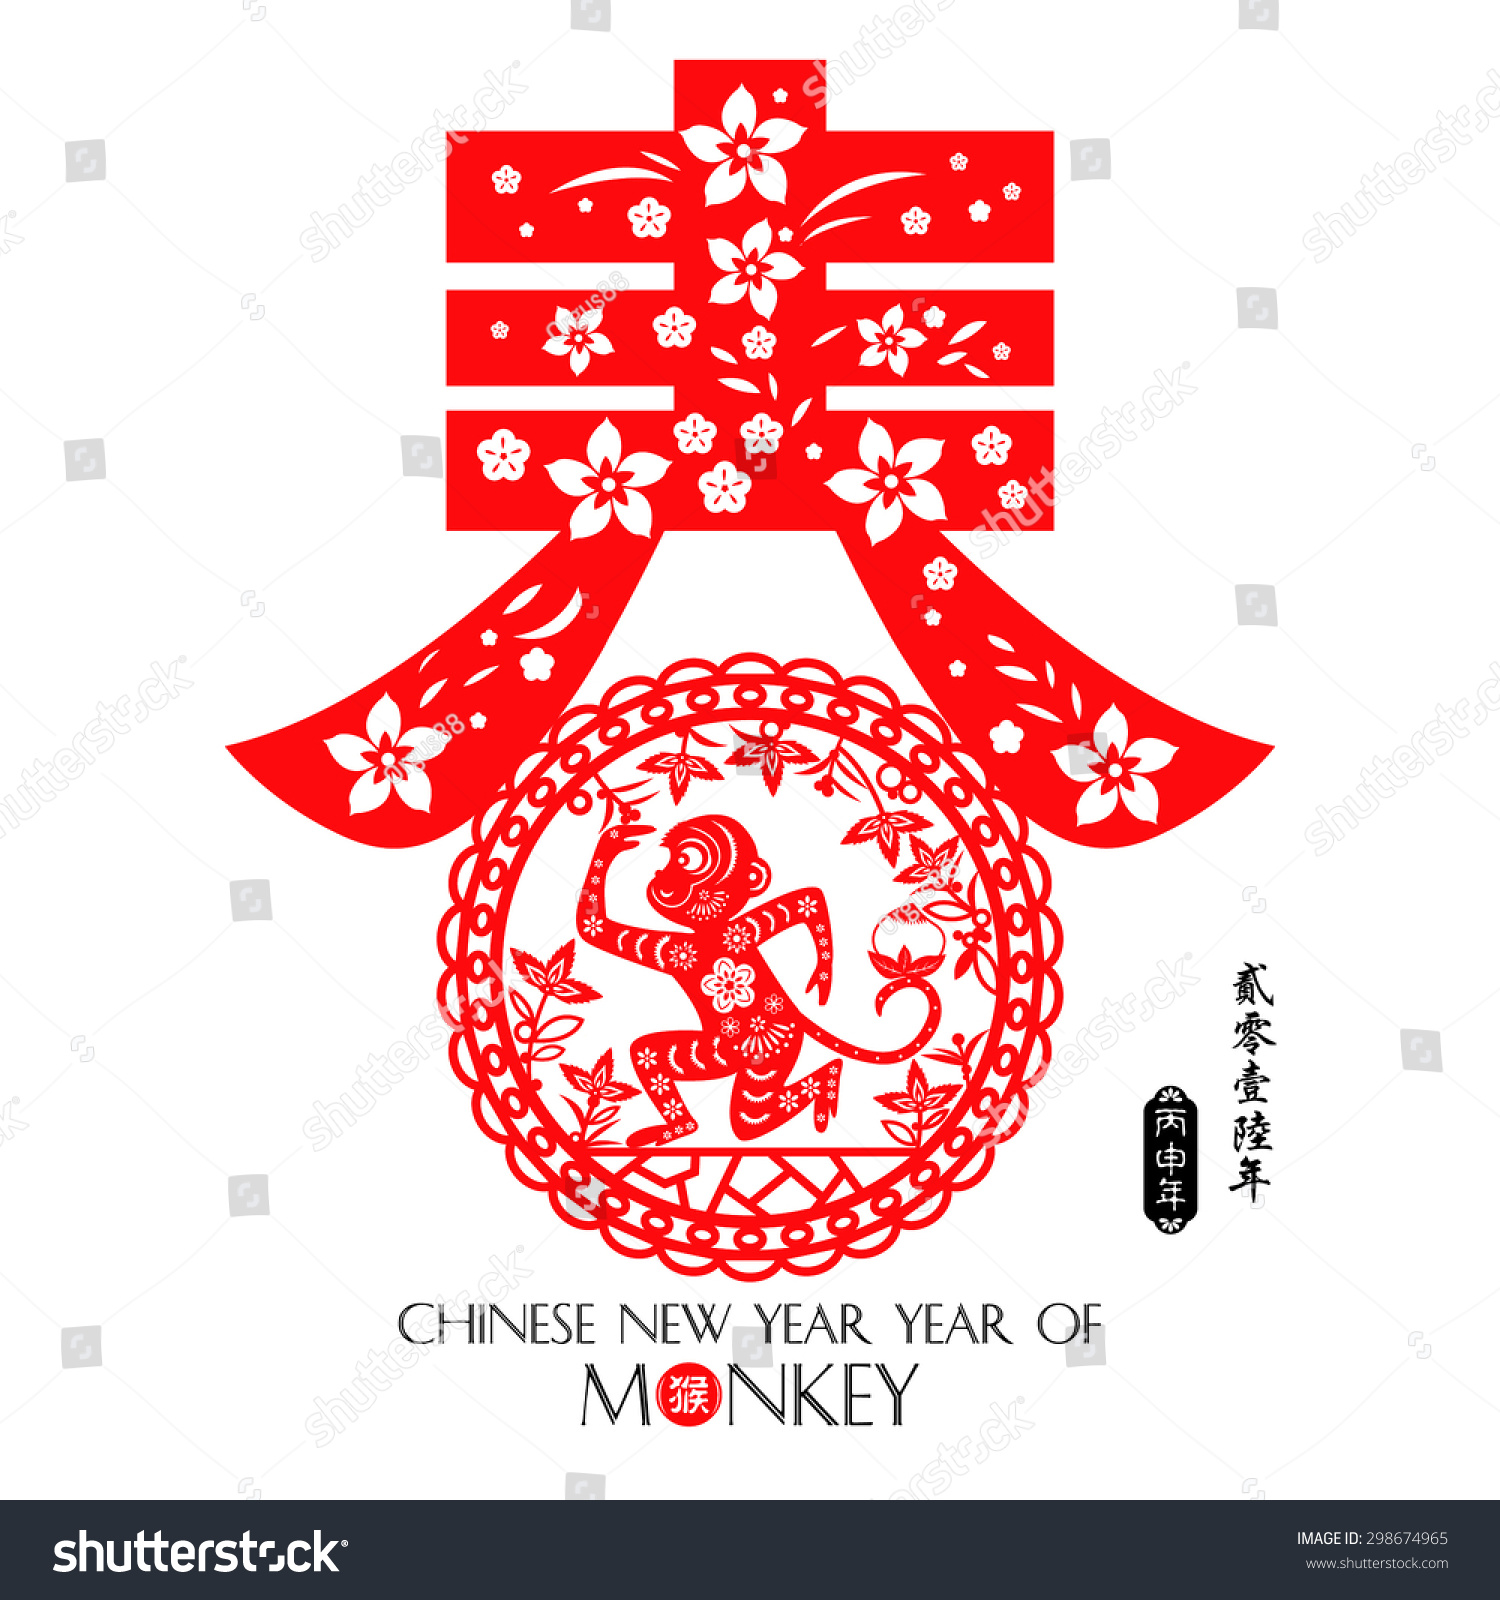 Chinese Year Monkey Made By Traditional Stock Vector 298674965 ...